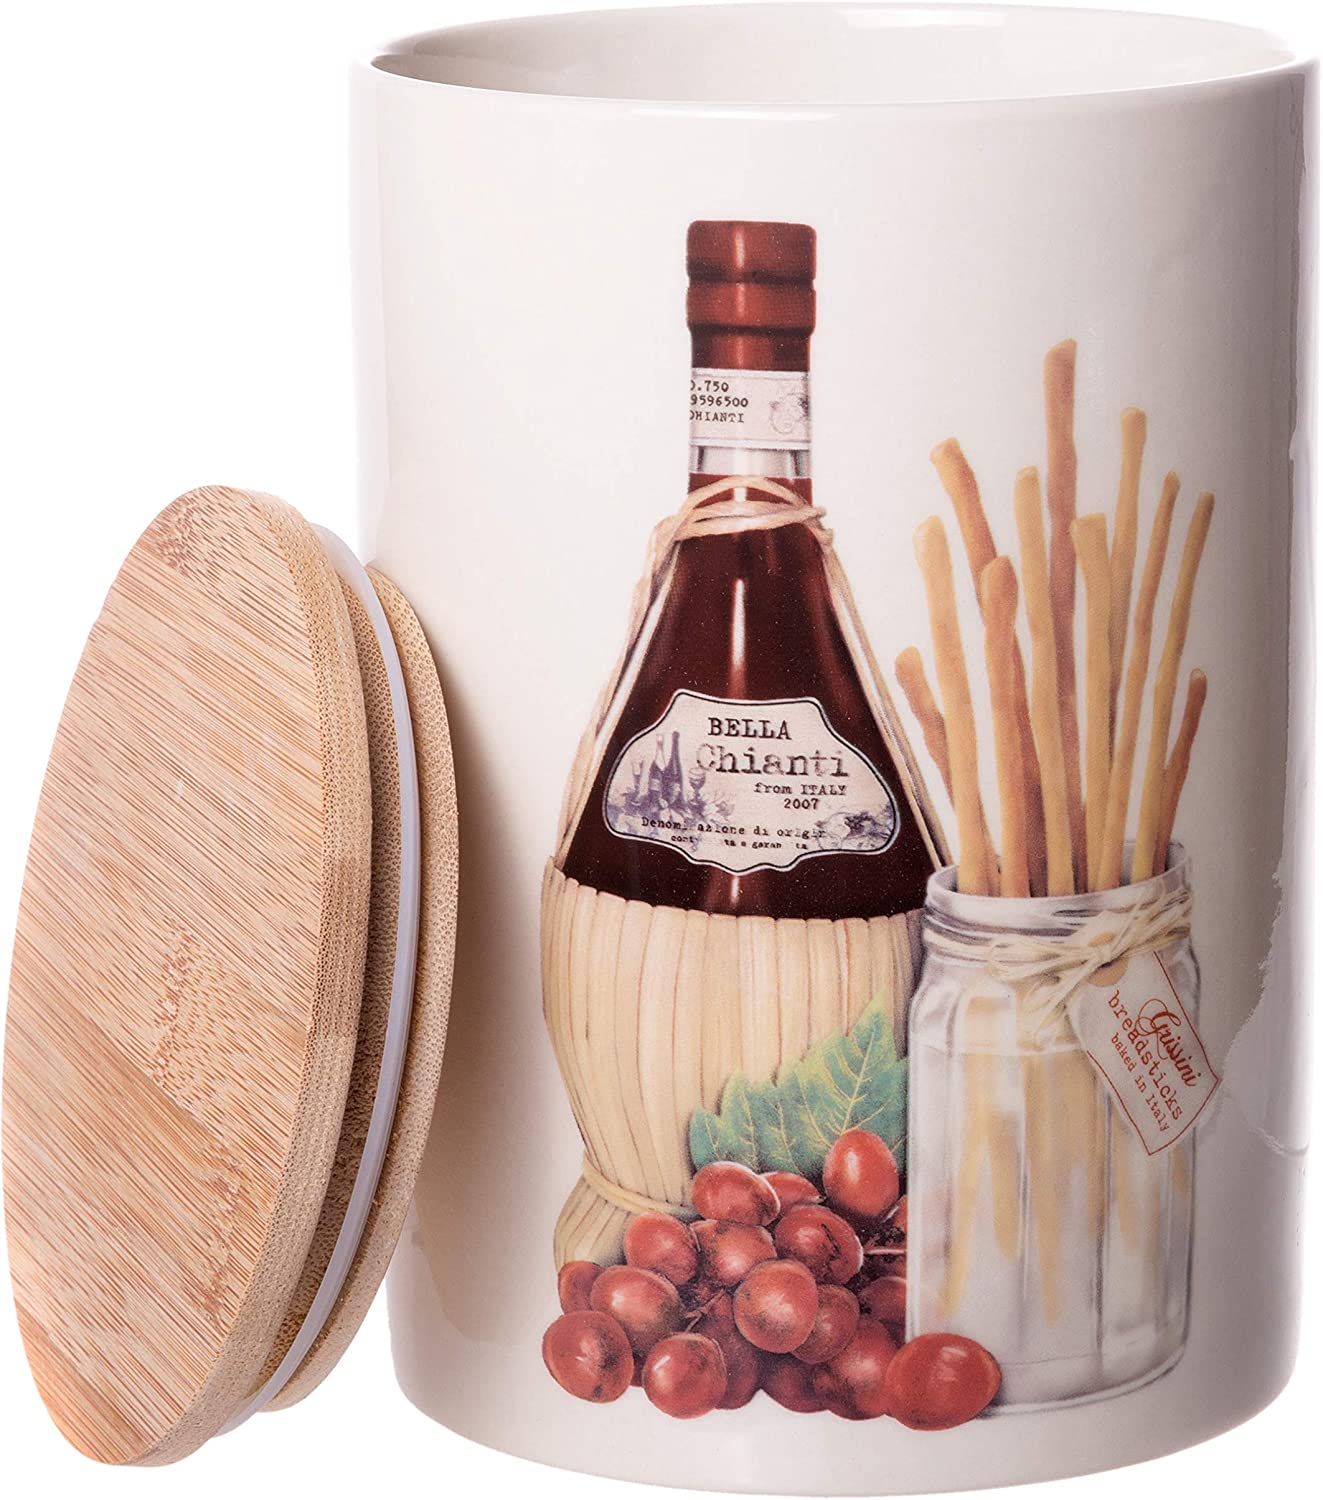 Round Stoneware Canister - Wine & Breadsticks - Food Storage Jar with Airtight Bamboo Lid